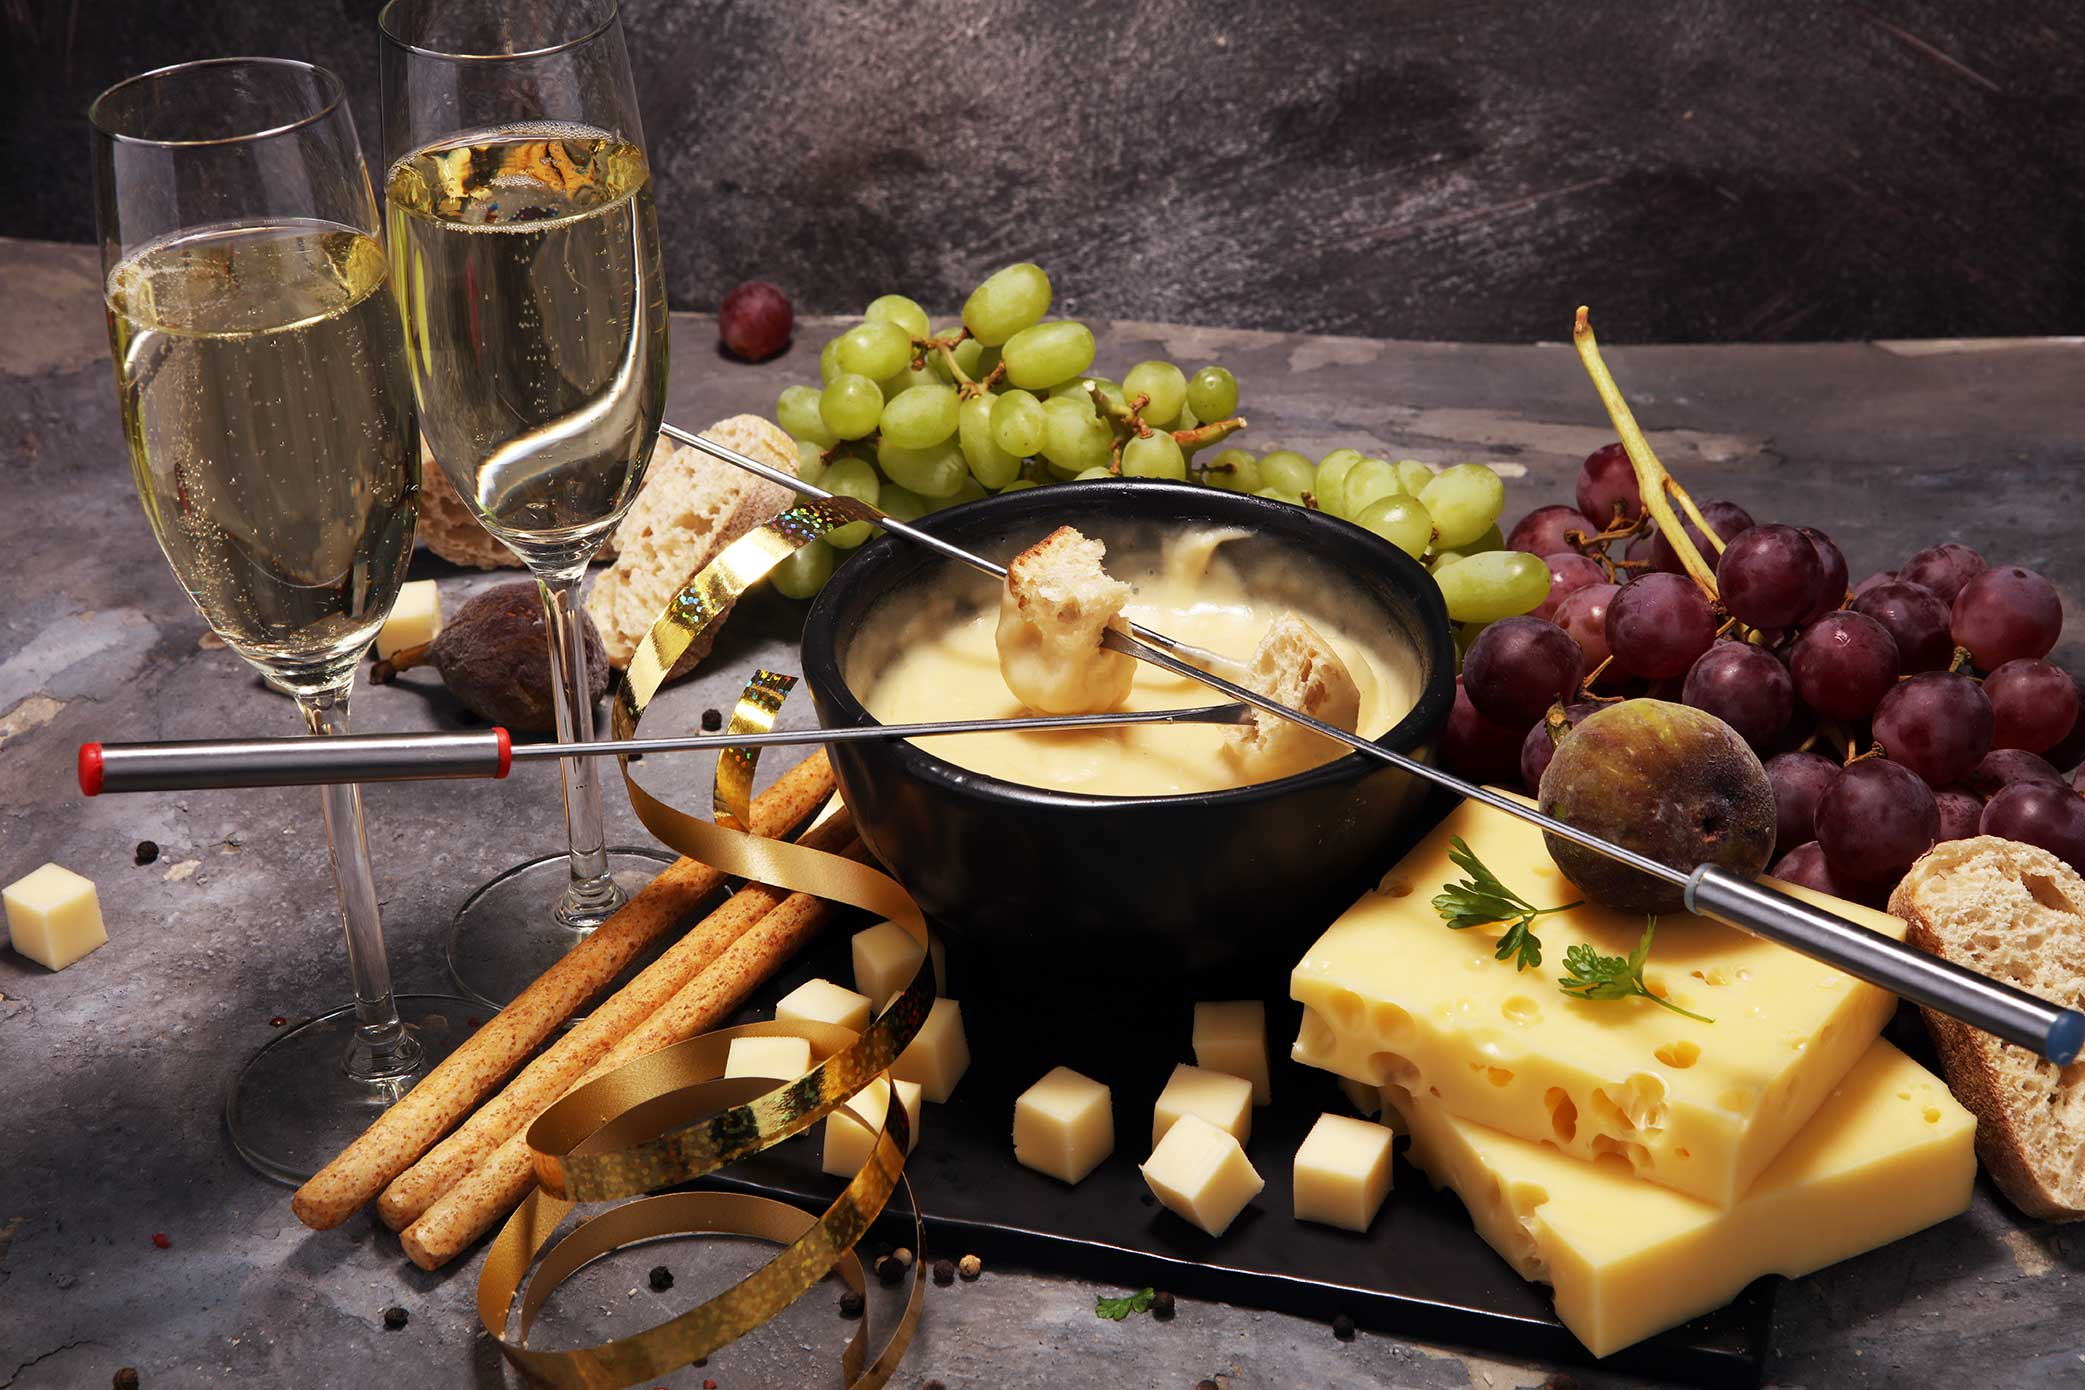 Traditional cheese fondue, part of the swiss cuisine at the Hotel Bodmi